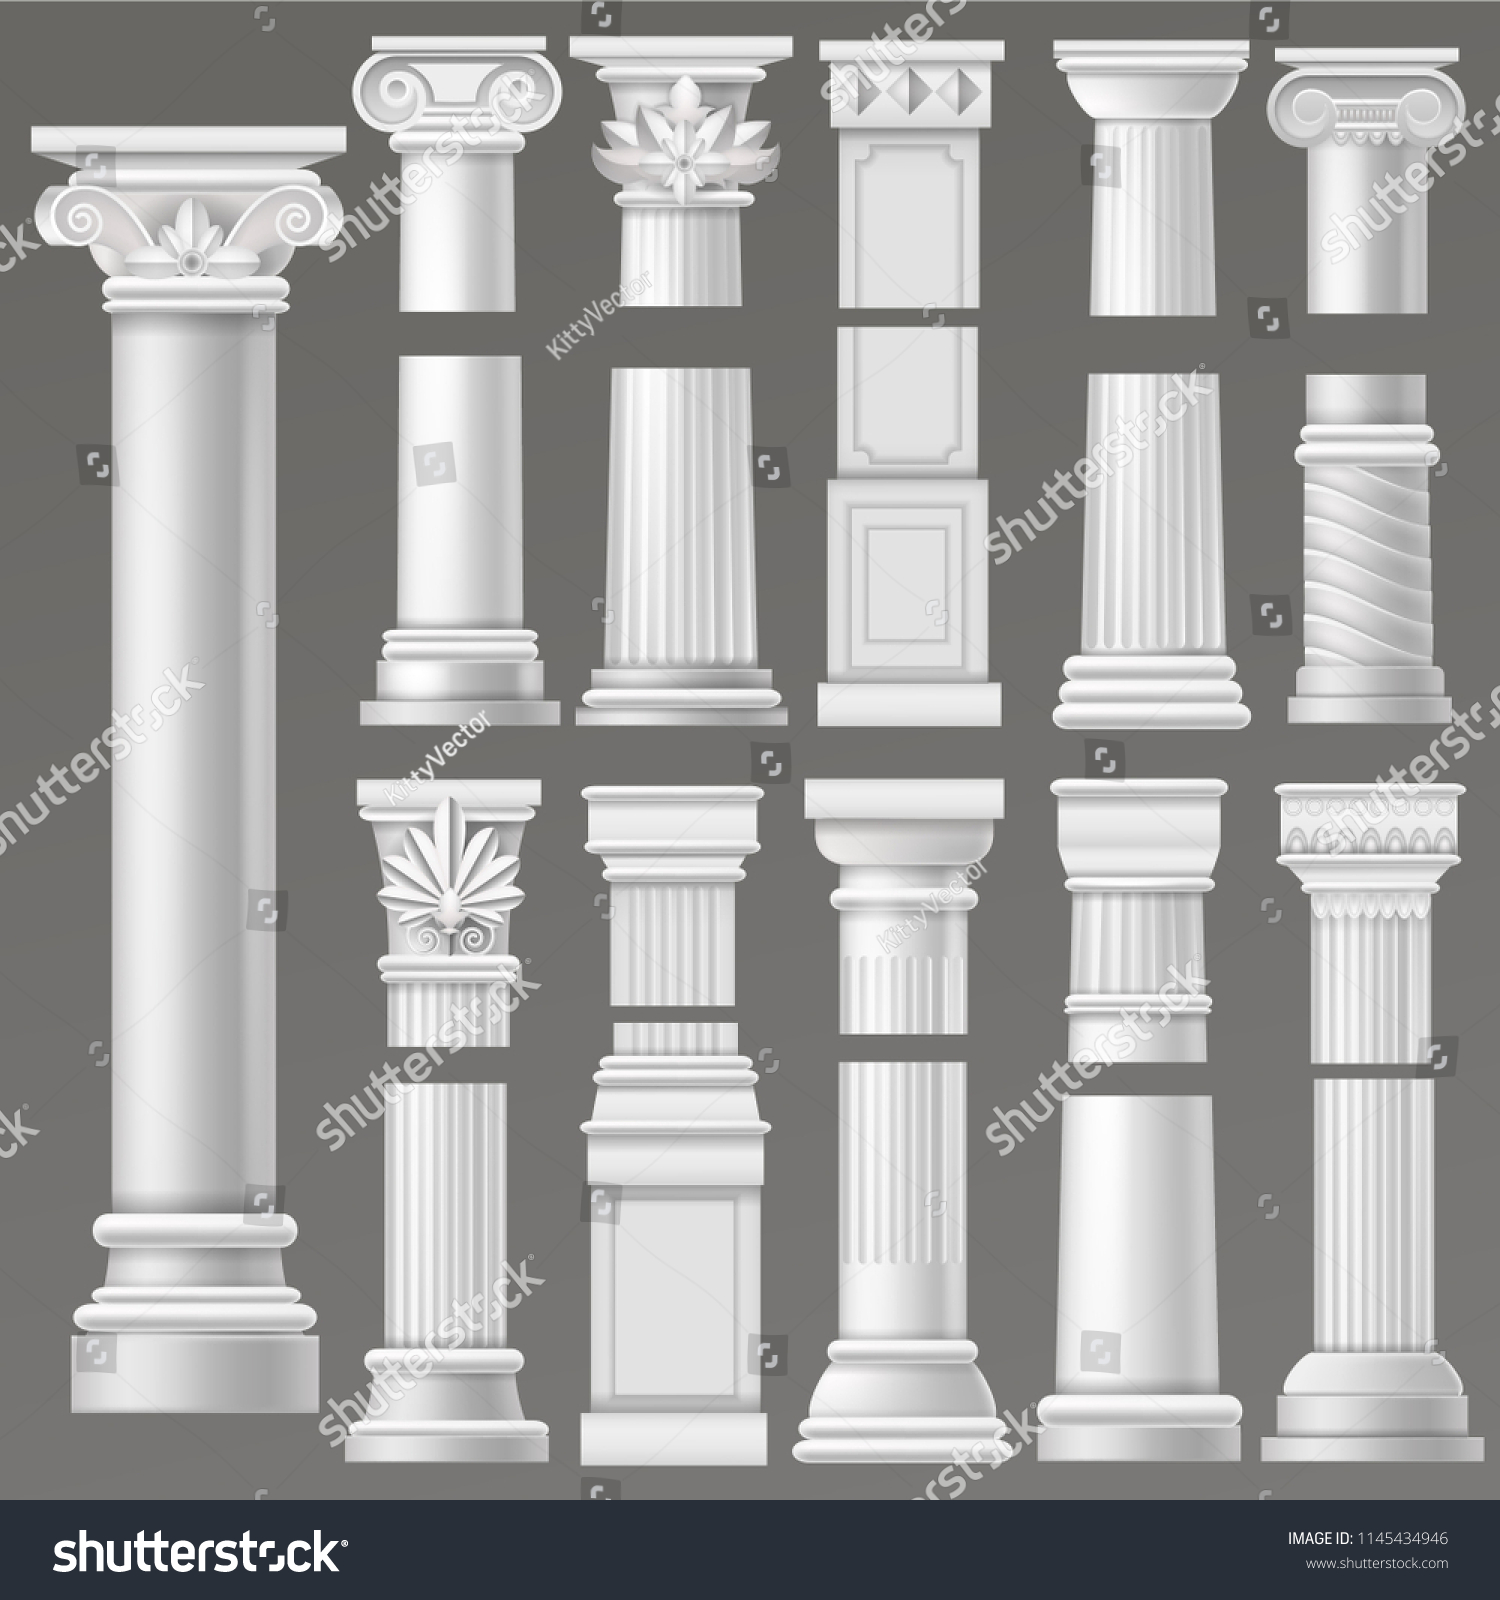 Ancient column vector historical antique column or classic pillar of historic roman architecture illustration ancientry architectural set of rome or greek culture isolated on background